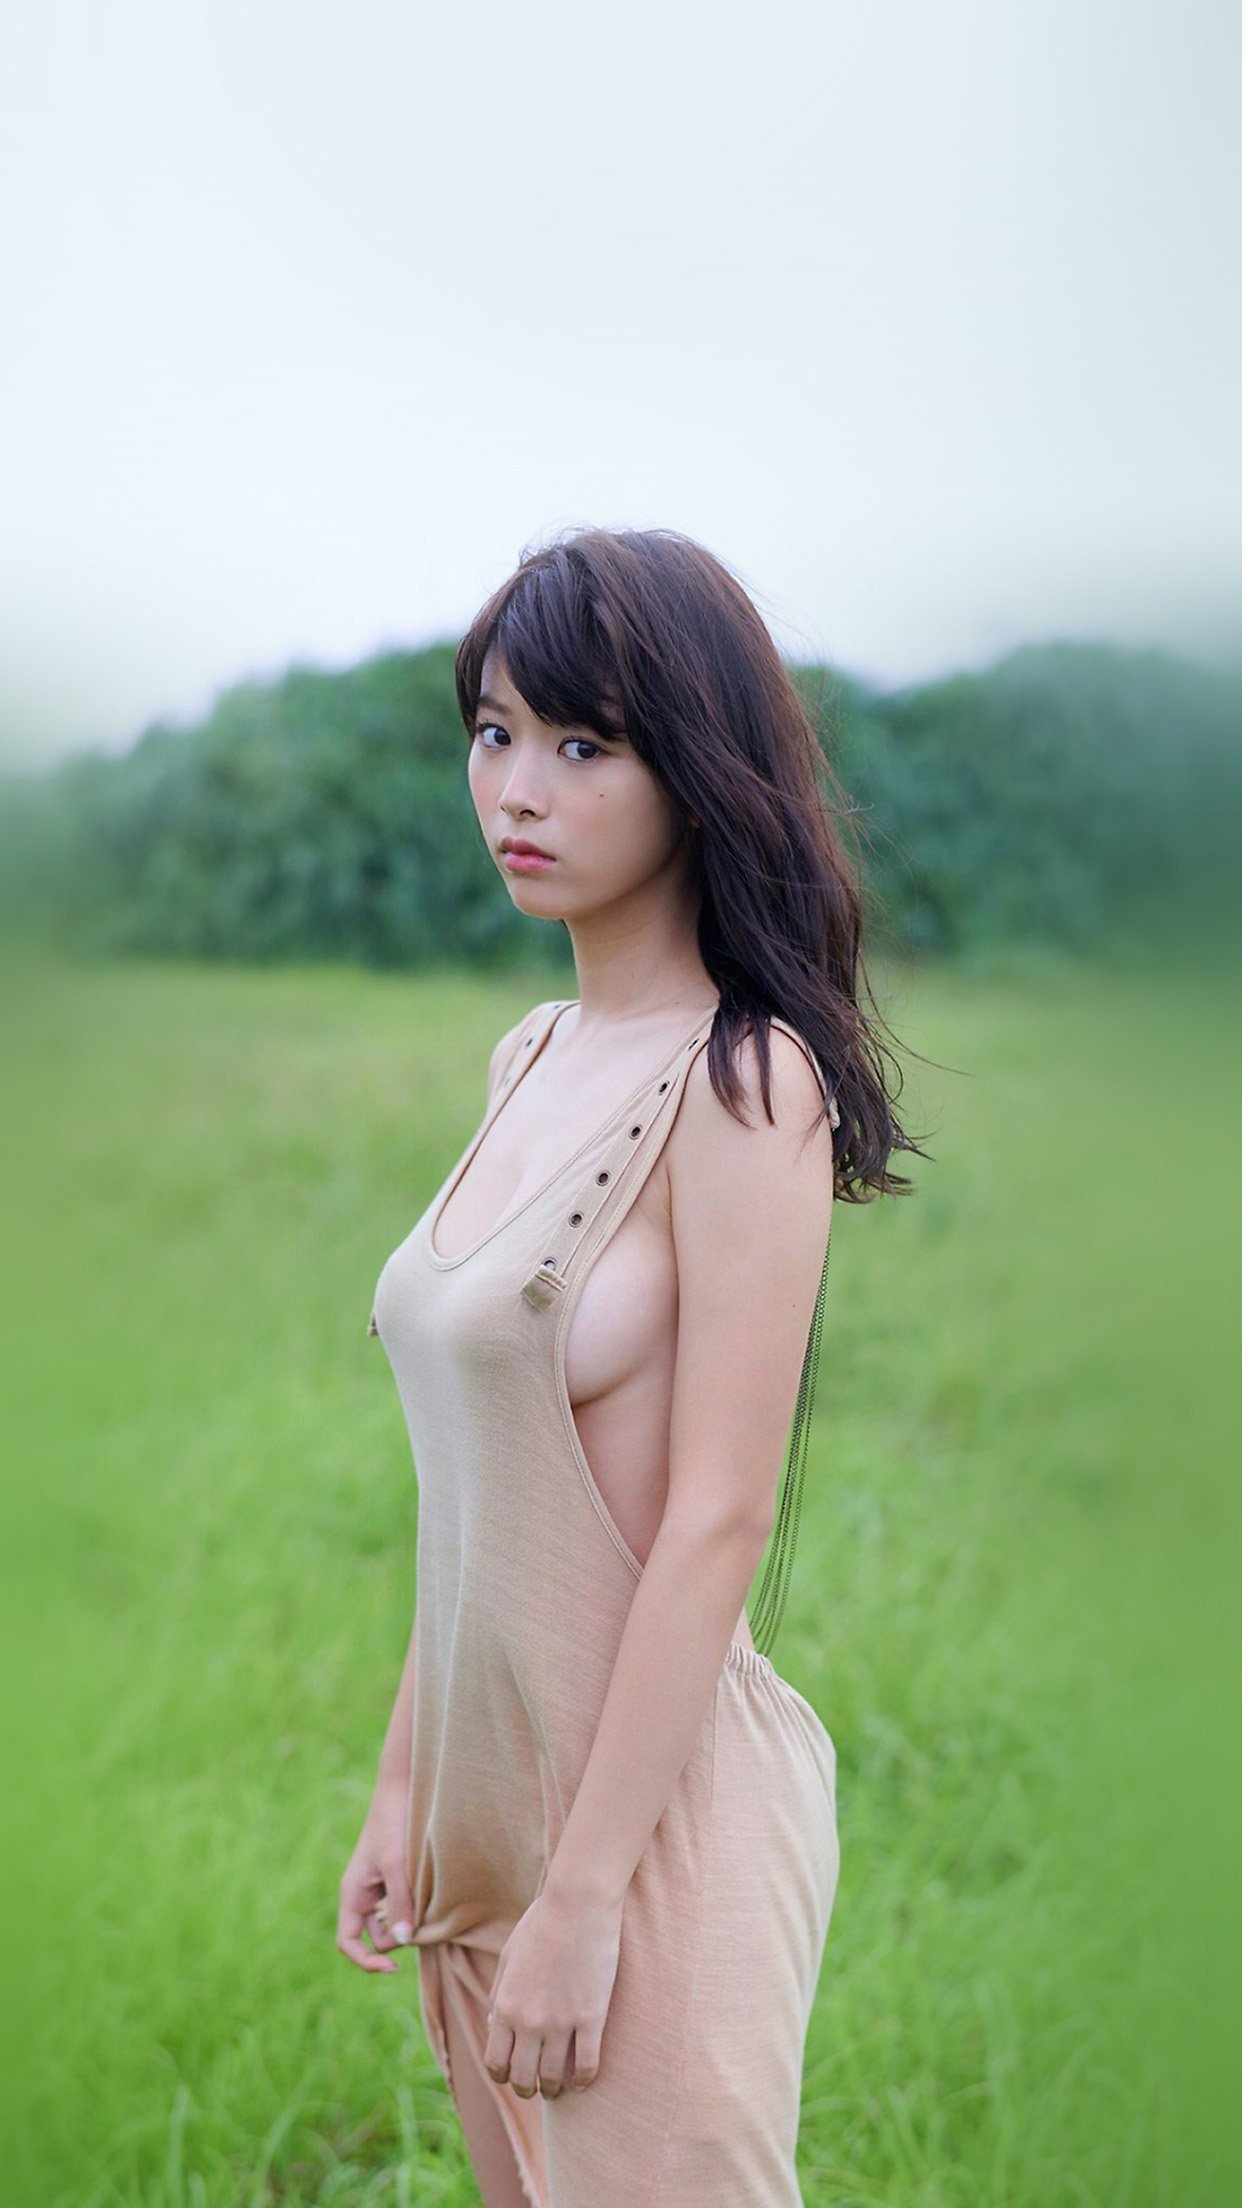 iPhone7papers.com | iPhone7 wallpaper | hl58-japanese-girl-asian ...